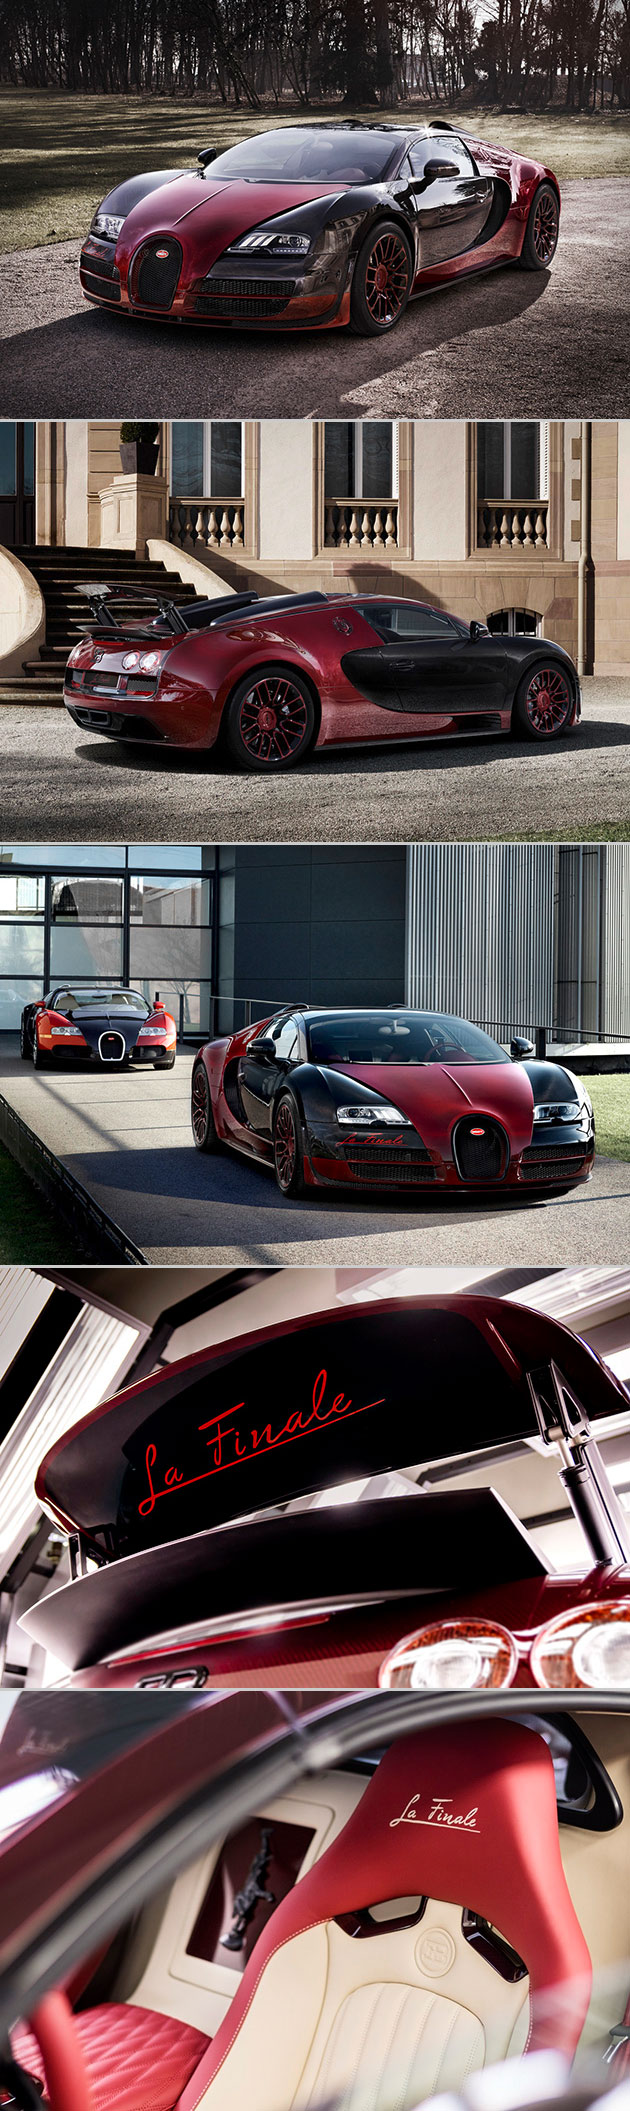 bugatti veyron grand sport vitesse la finale is the last car here 39 s another look techeblog. Black Bedroom Furniture Sets. Home Design Ideas